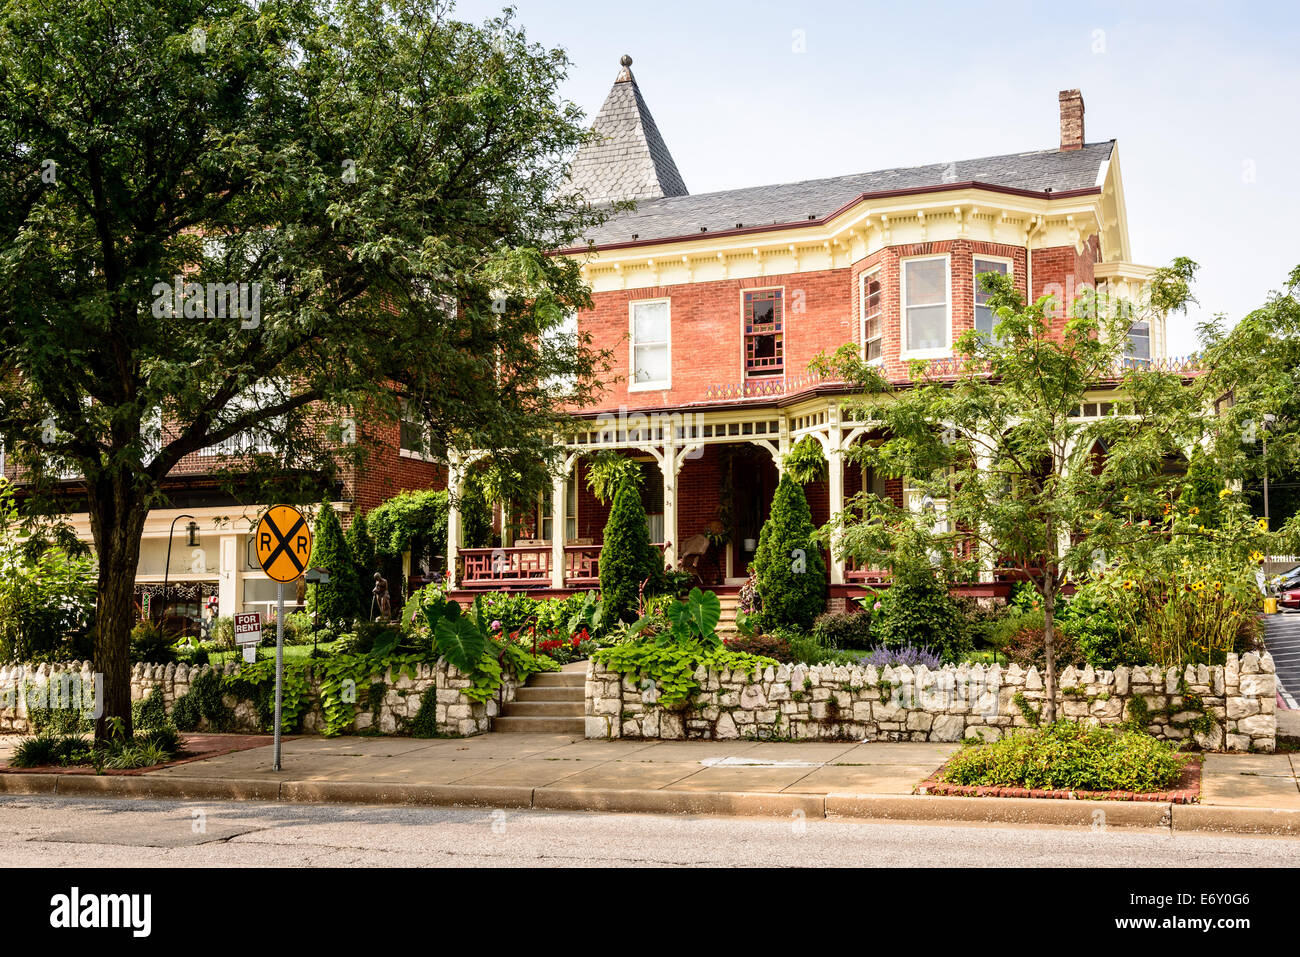 American Auctions & Appraisals, 35 West Main Street, Westminster, Maryland - Stock Image